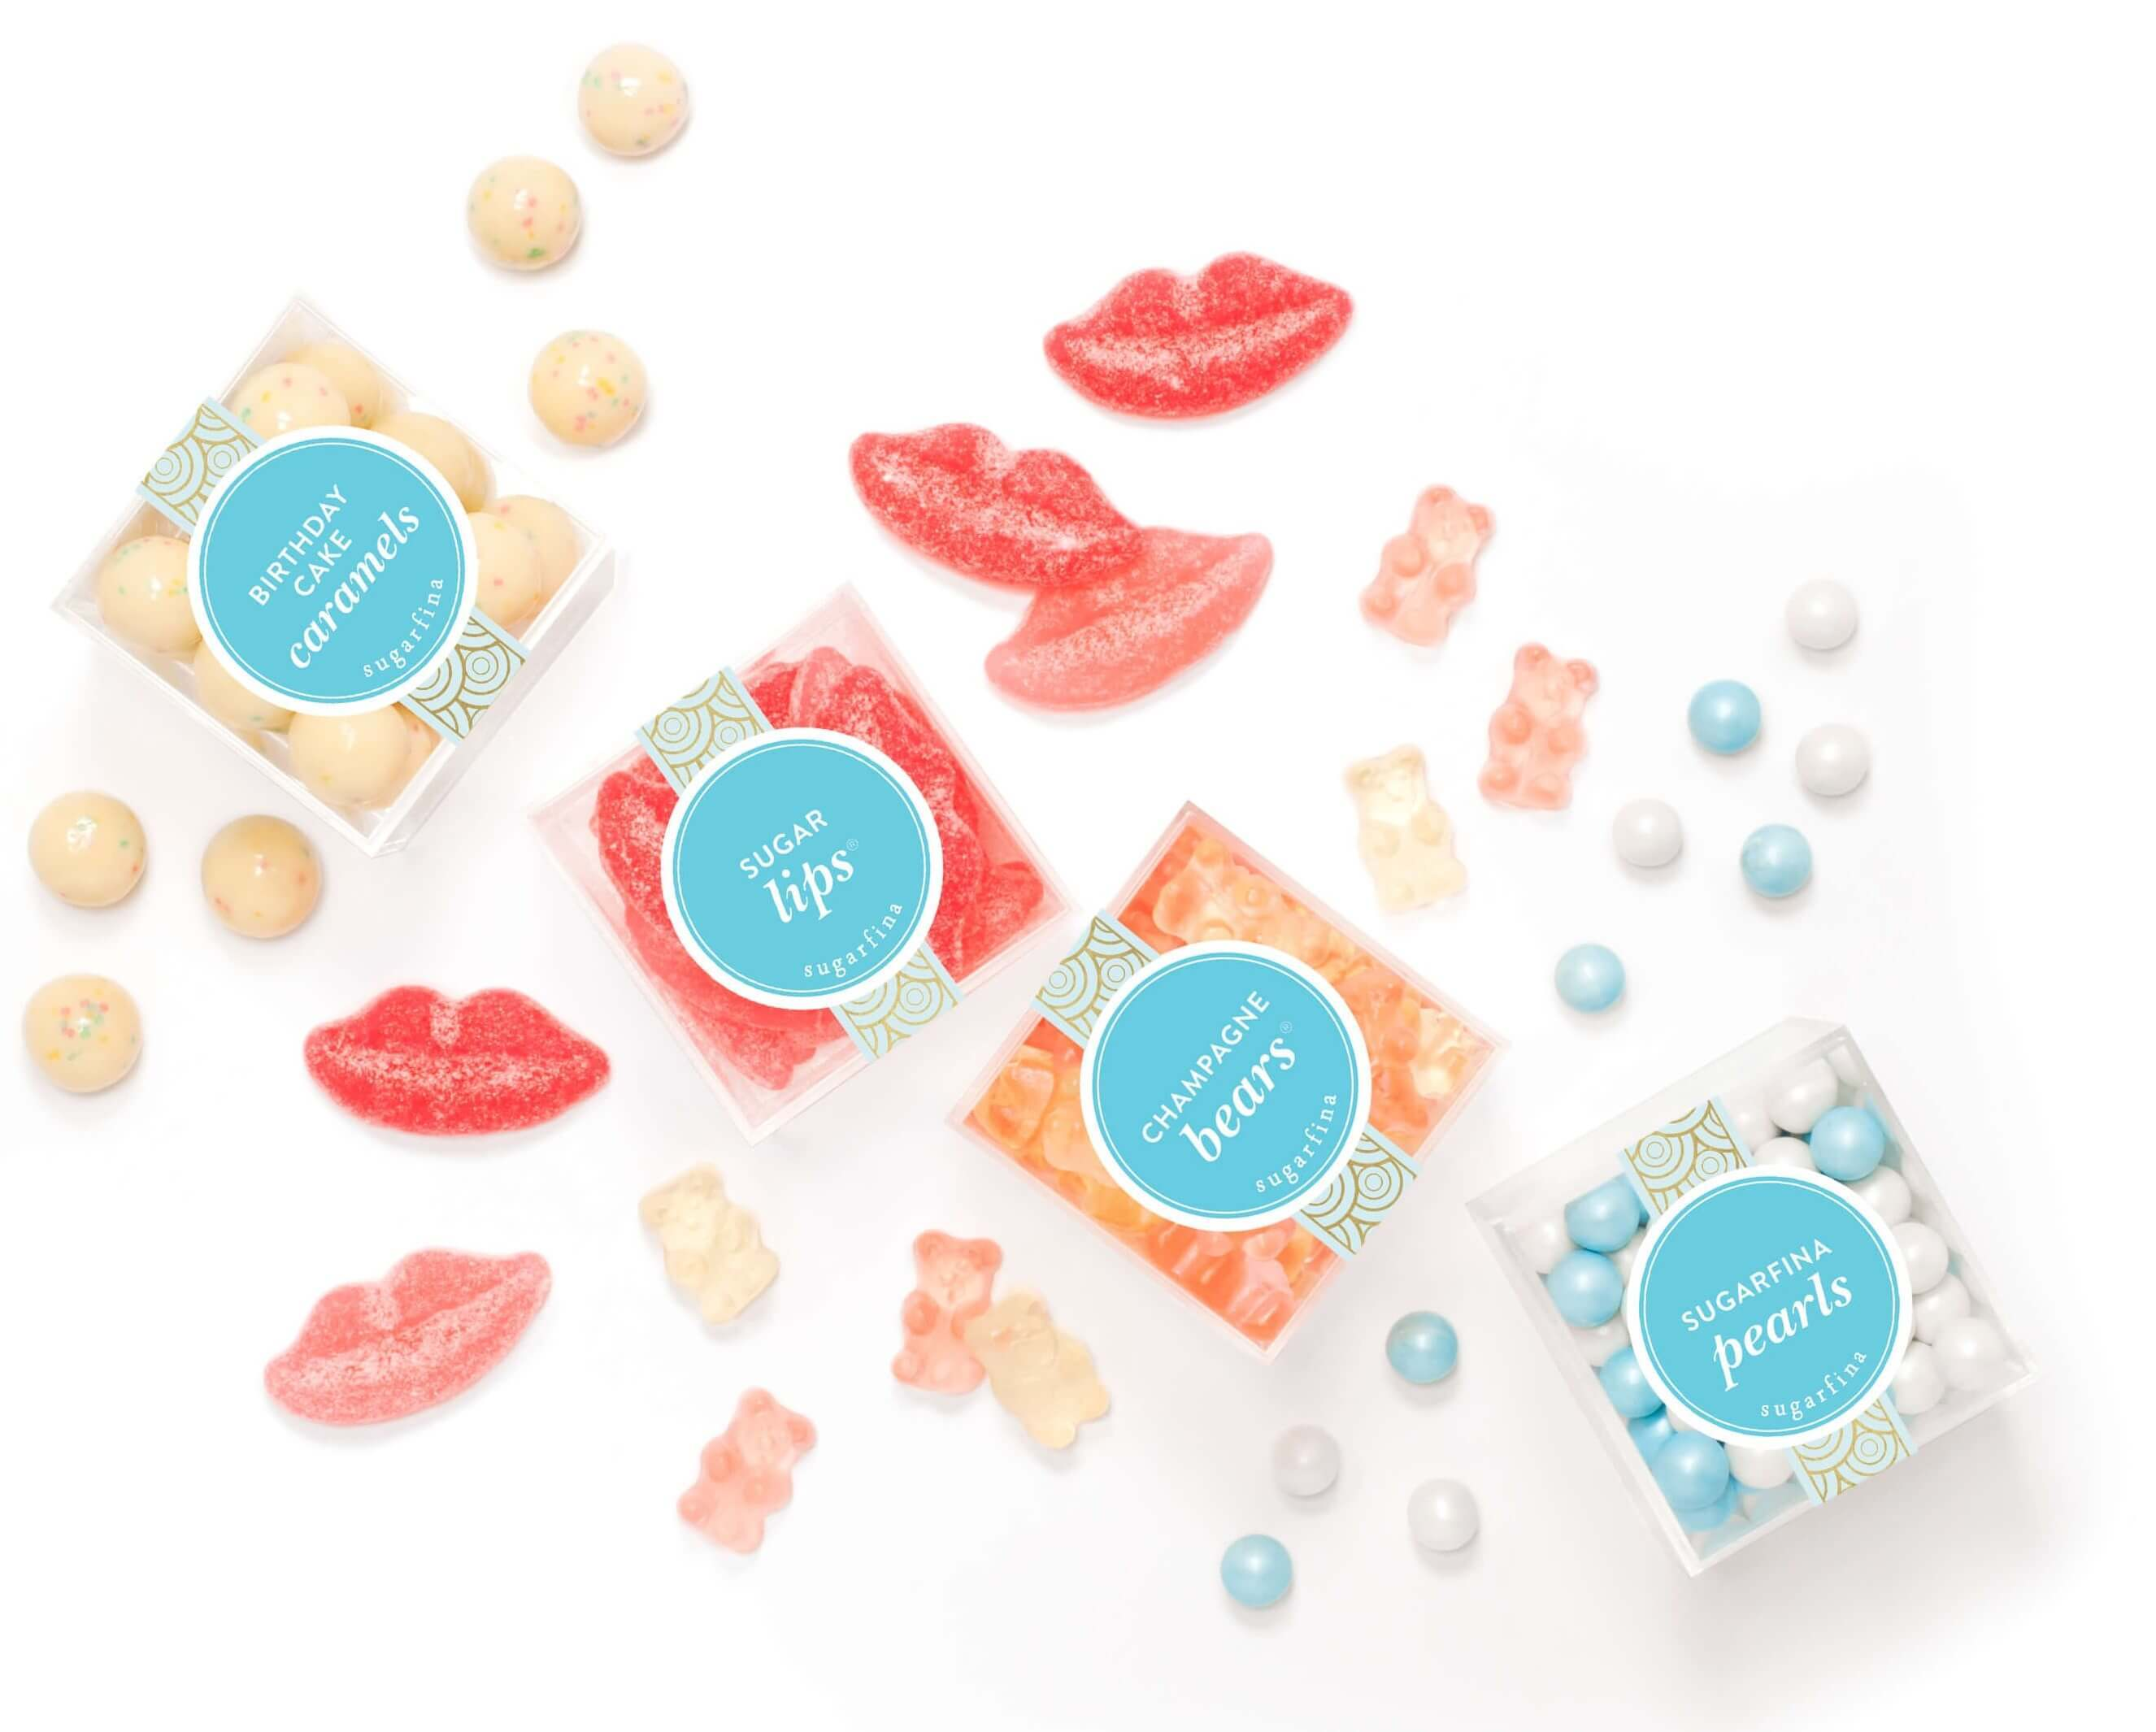 Bestselling Sugarfina Candies: Birthday Cake Caramels, Sugar Lips, Champagne Bears, and Sugarfina Pearls